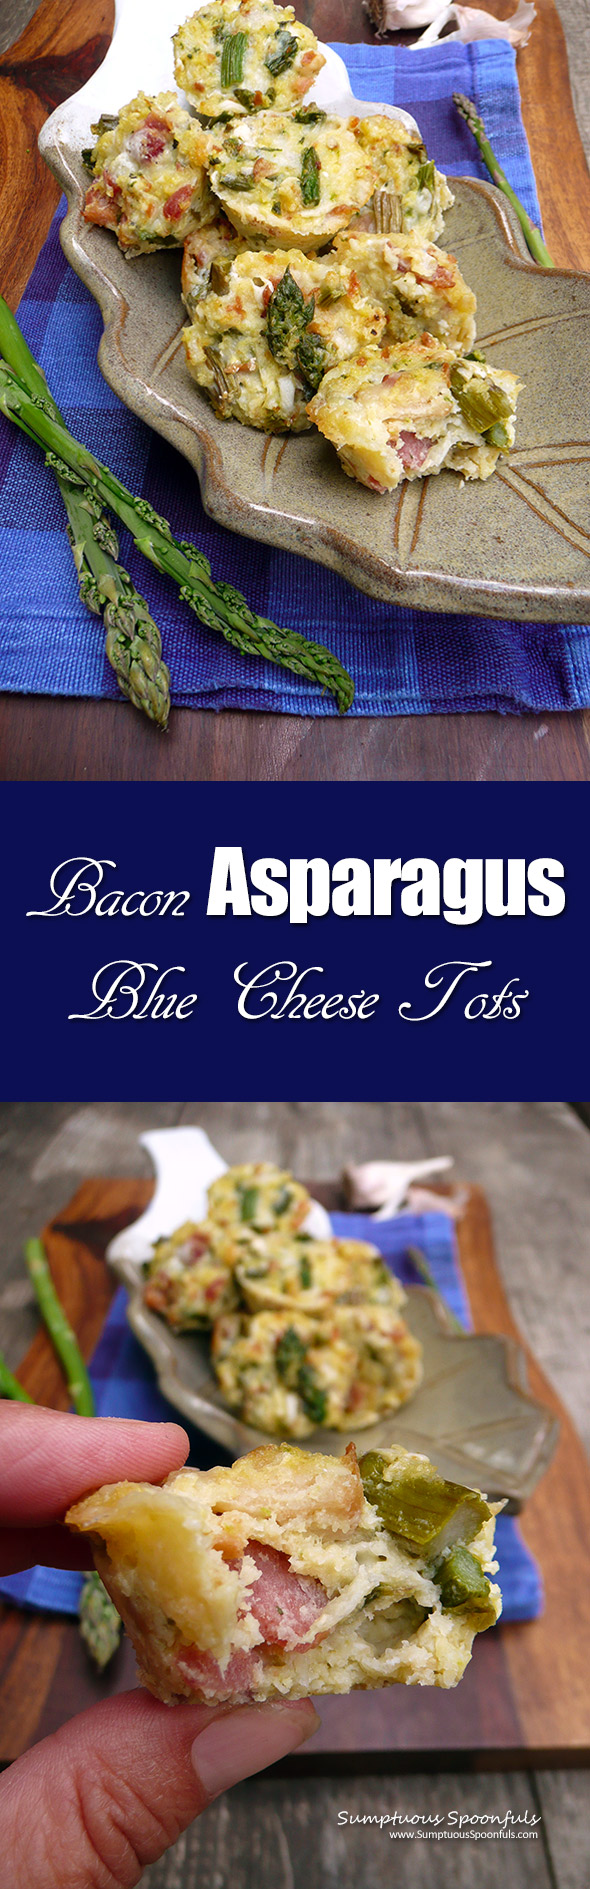 Bacon Asparagus Blue Cheese Tots ~ Sumptuous Spoonfuls #bitesize #appetizer #side #recipe